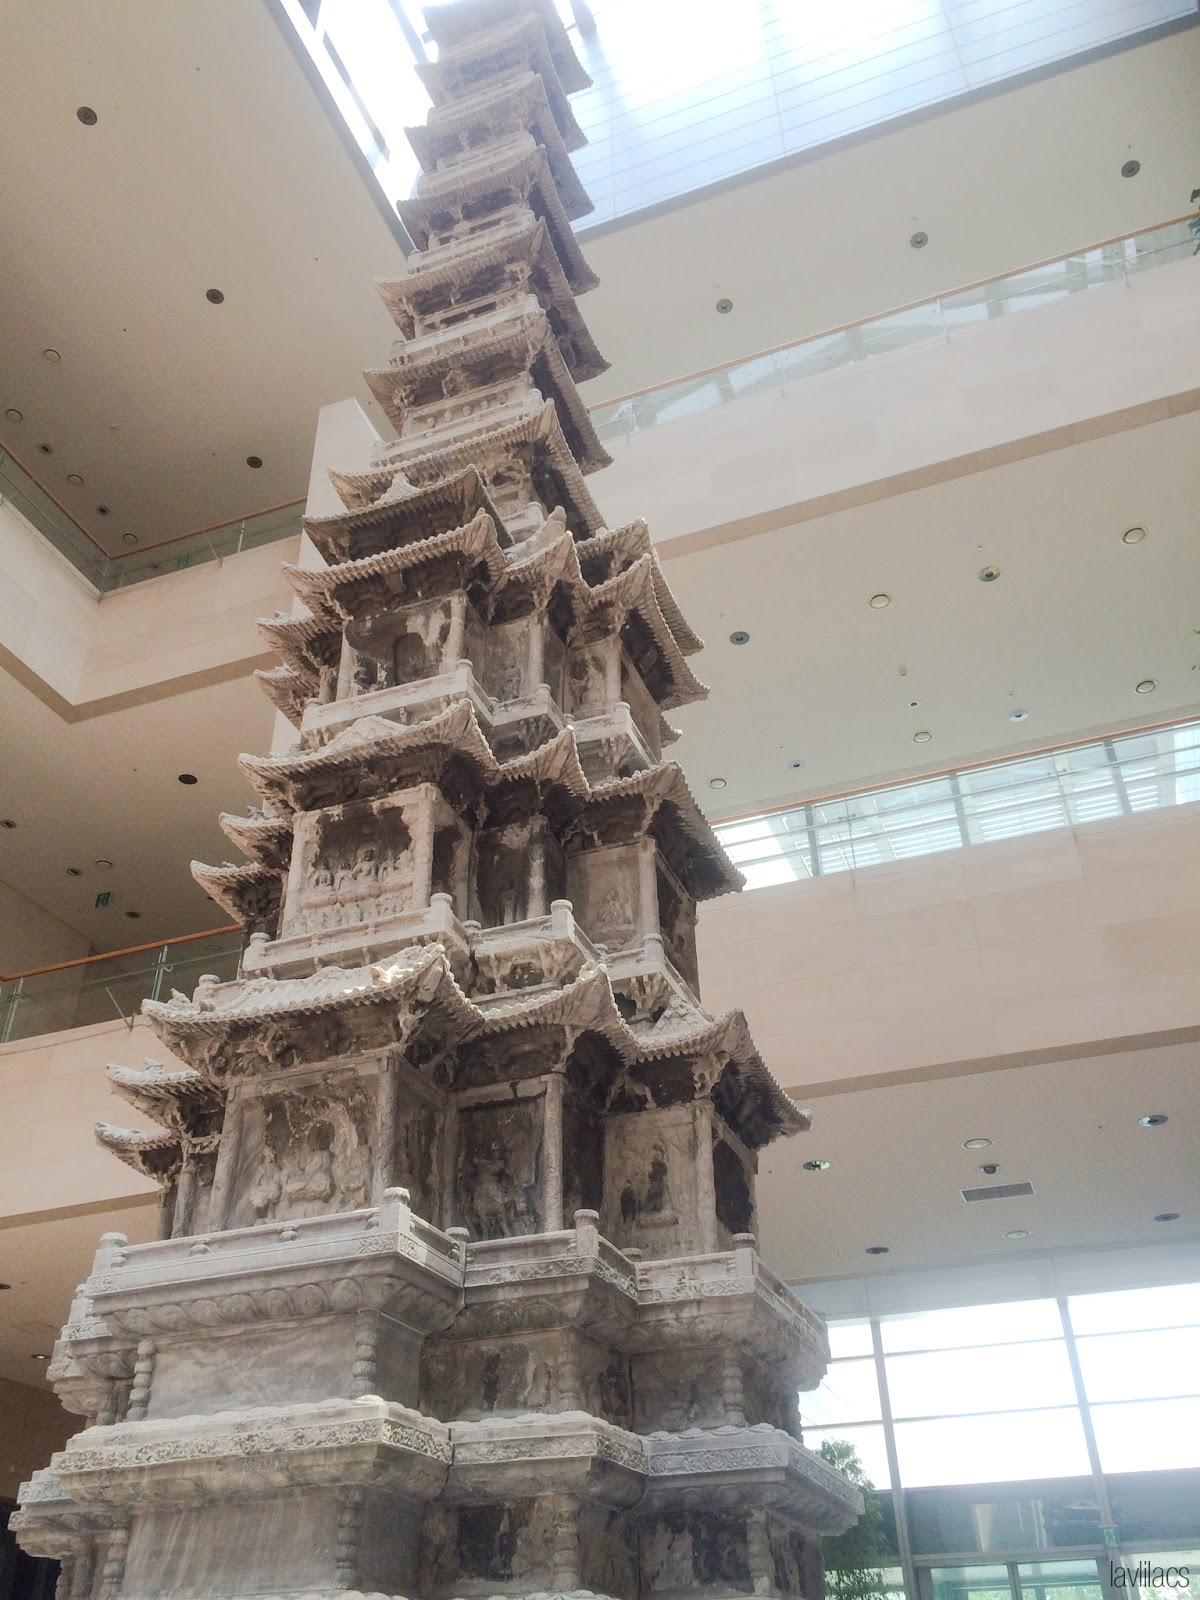 Seoul, Korea - Summer Study Abroad 2014 - National Museum of Korea 국립중앙박물관 pagoda